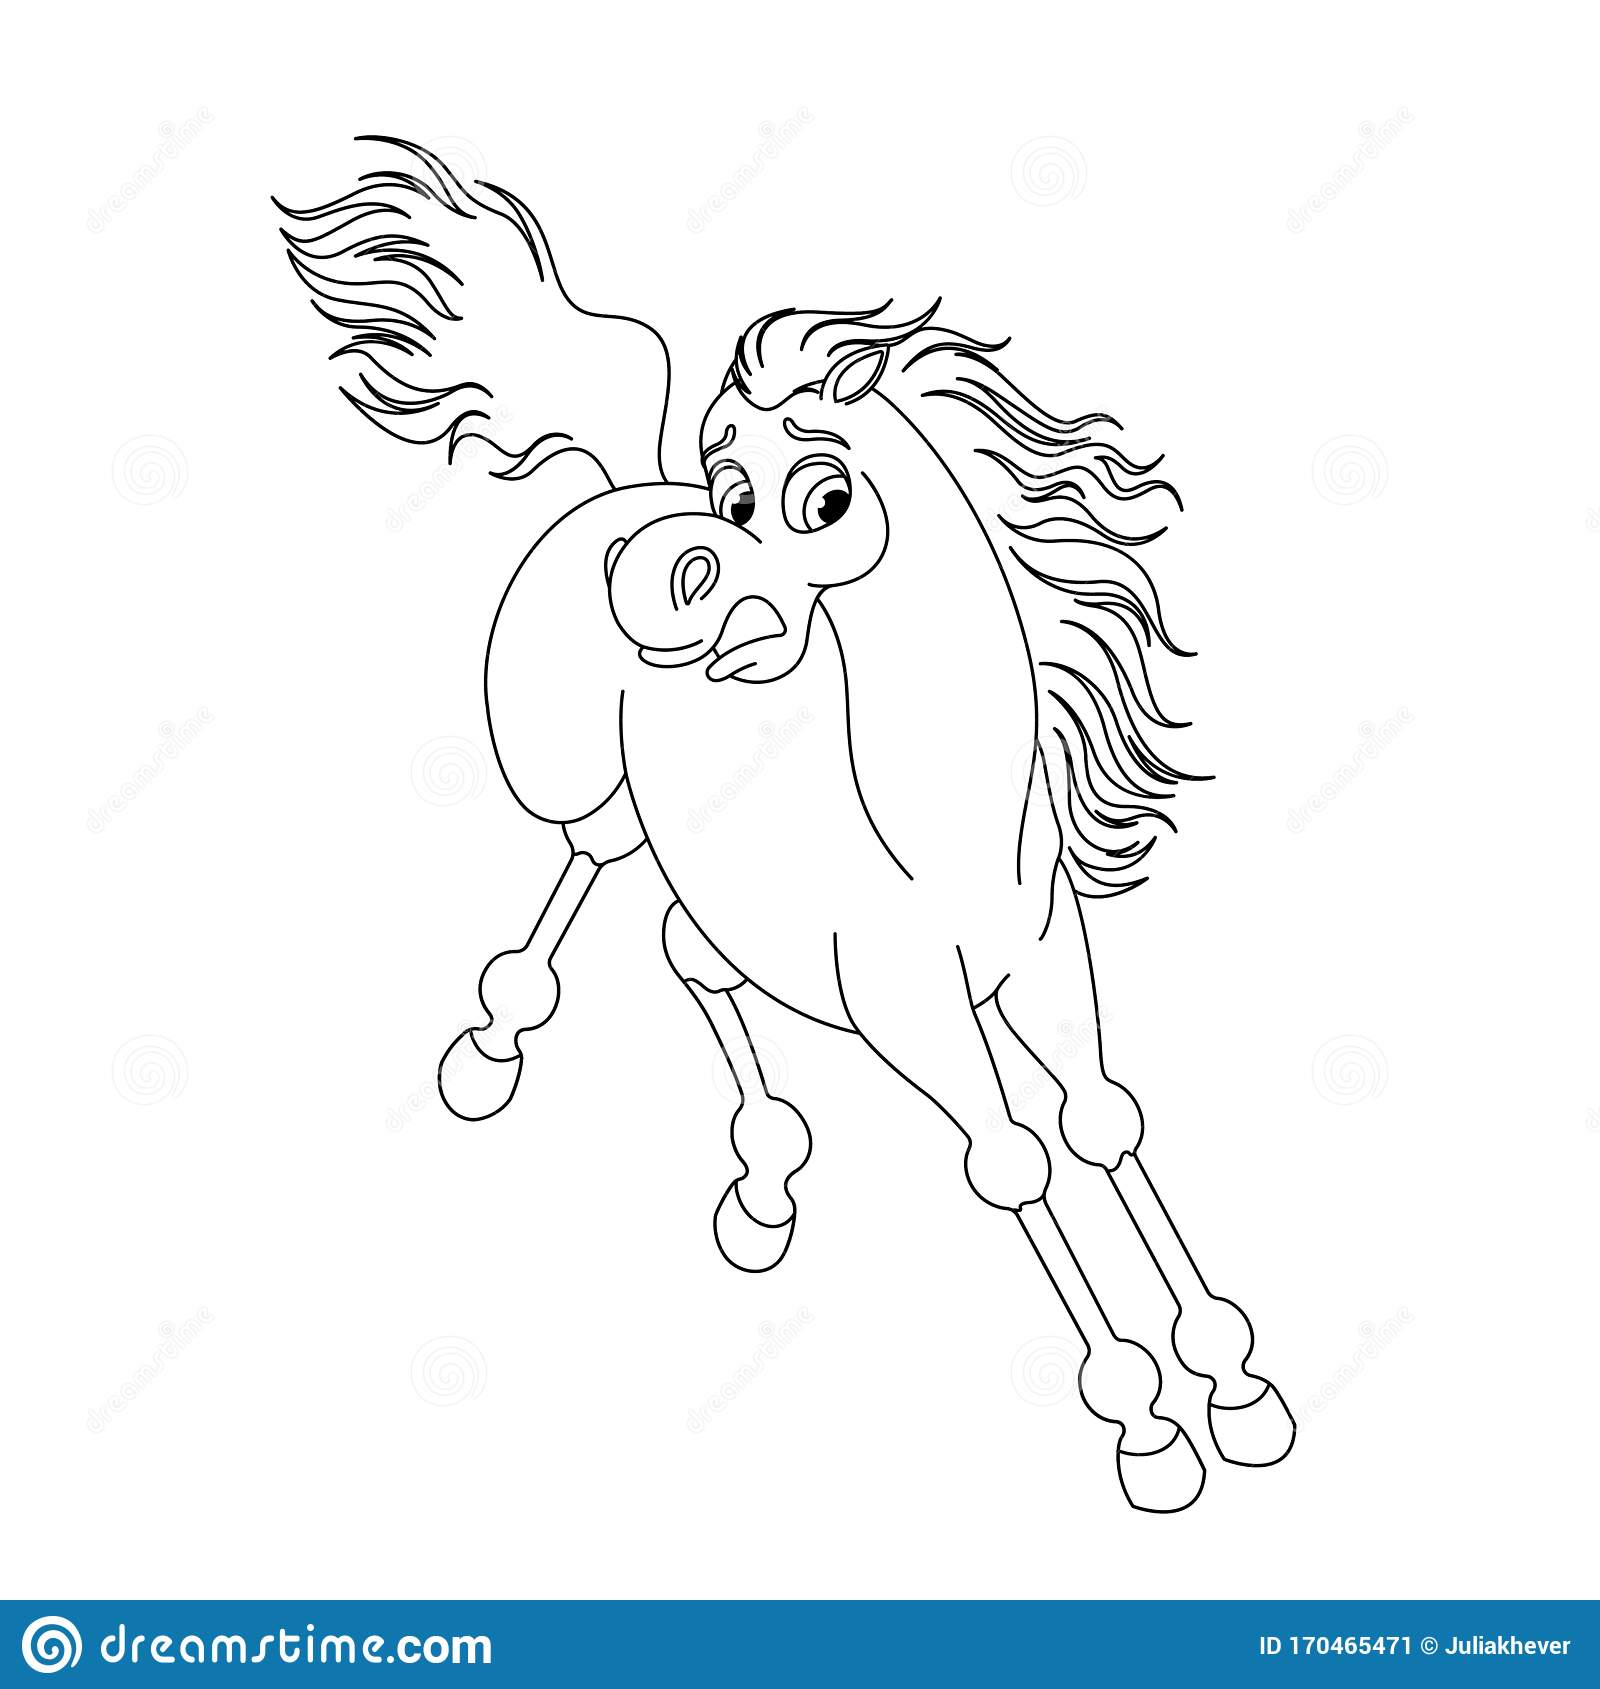 Man on jumping horse coloring pages - Hellokids.com | 1689x1600